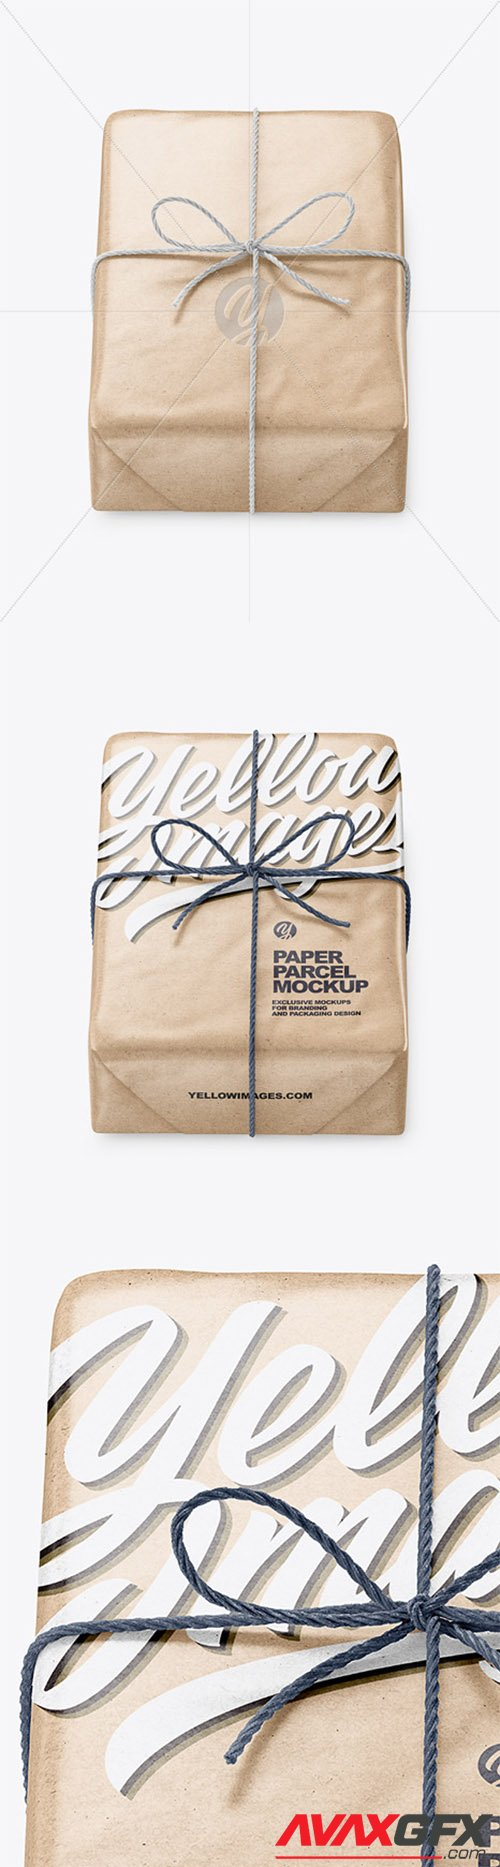 Kraft Paper Parcel With Row Bow Mockup 65625